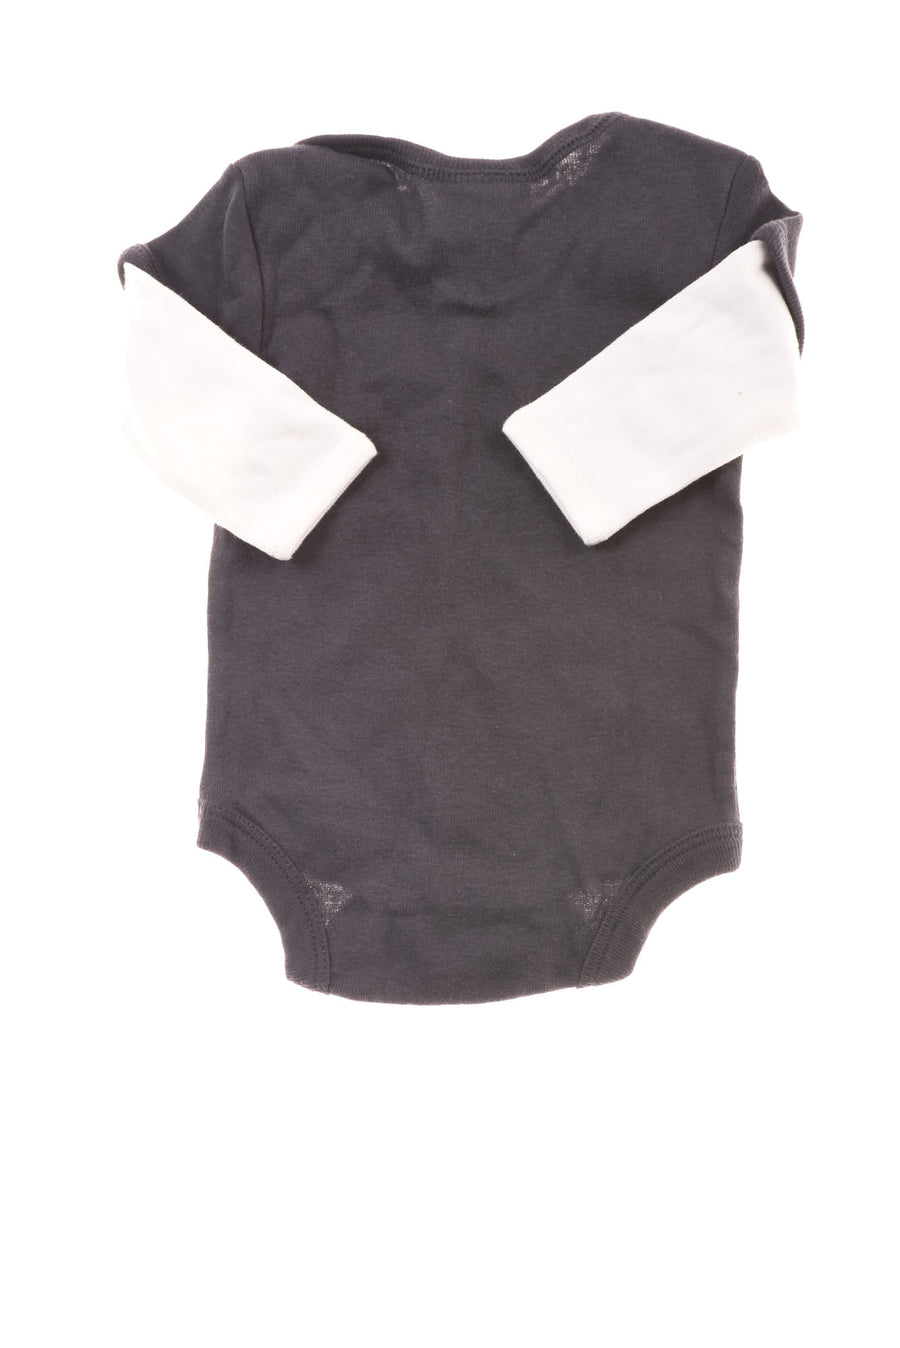 Baby Boy Bodysuit By Baby Gap